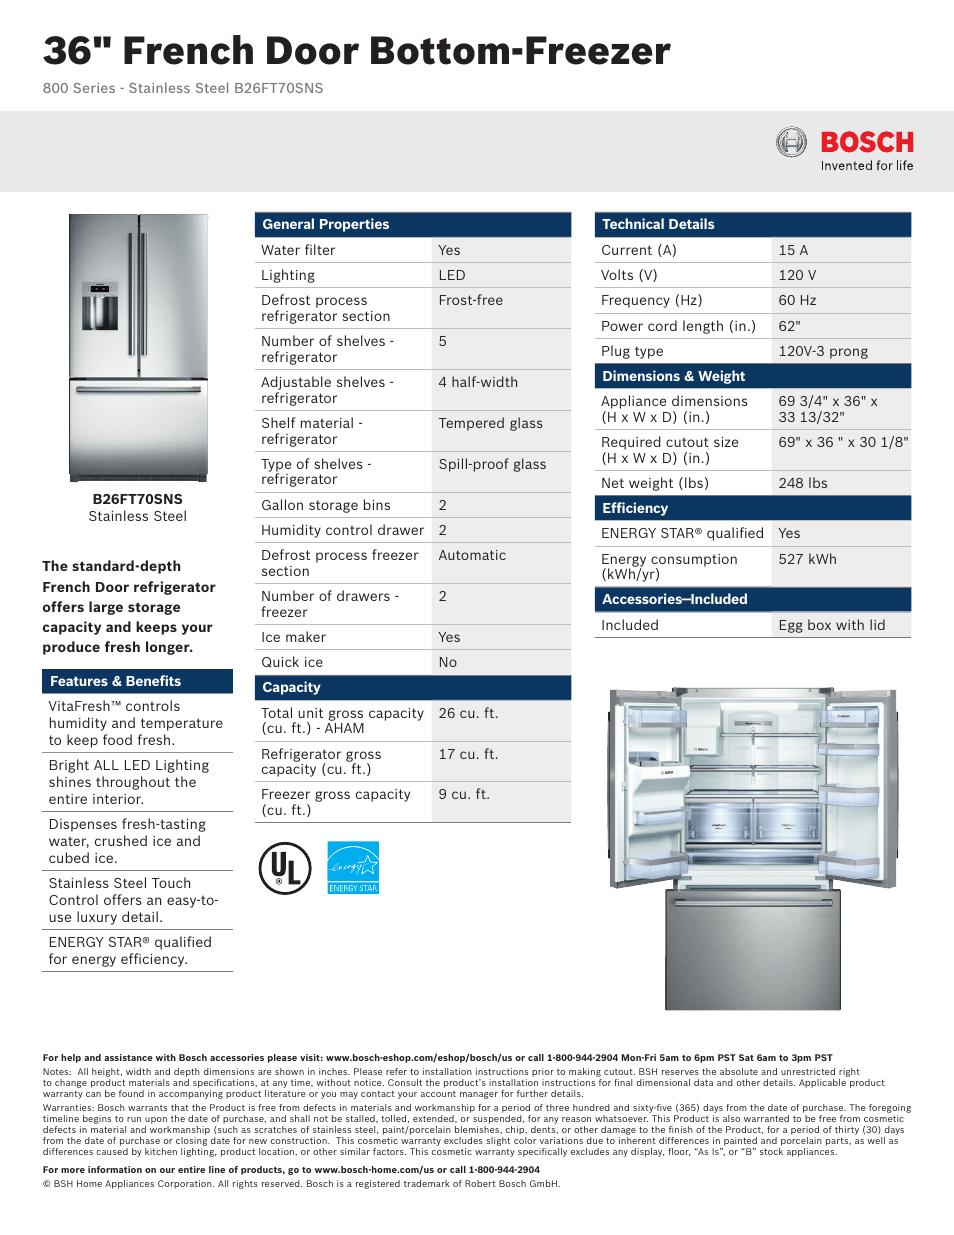 Bosch B26ft70sns User Manual 2 Pages